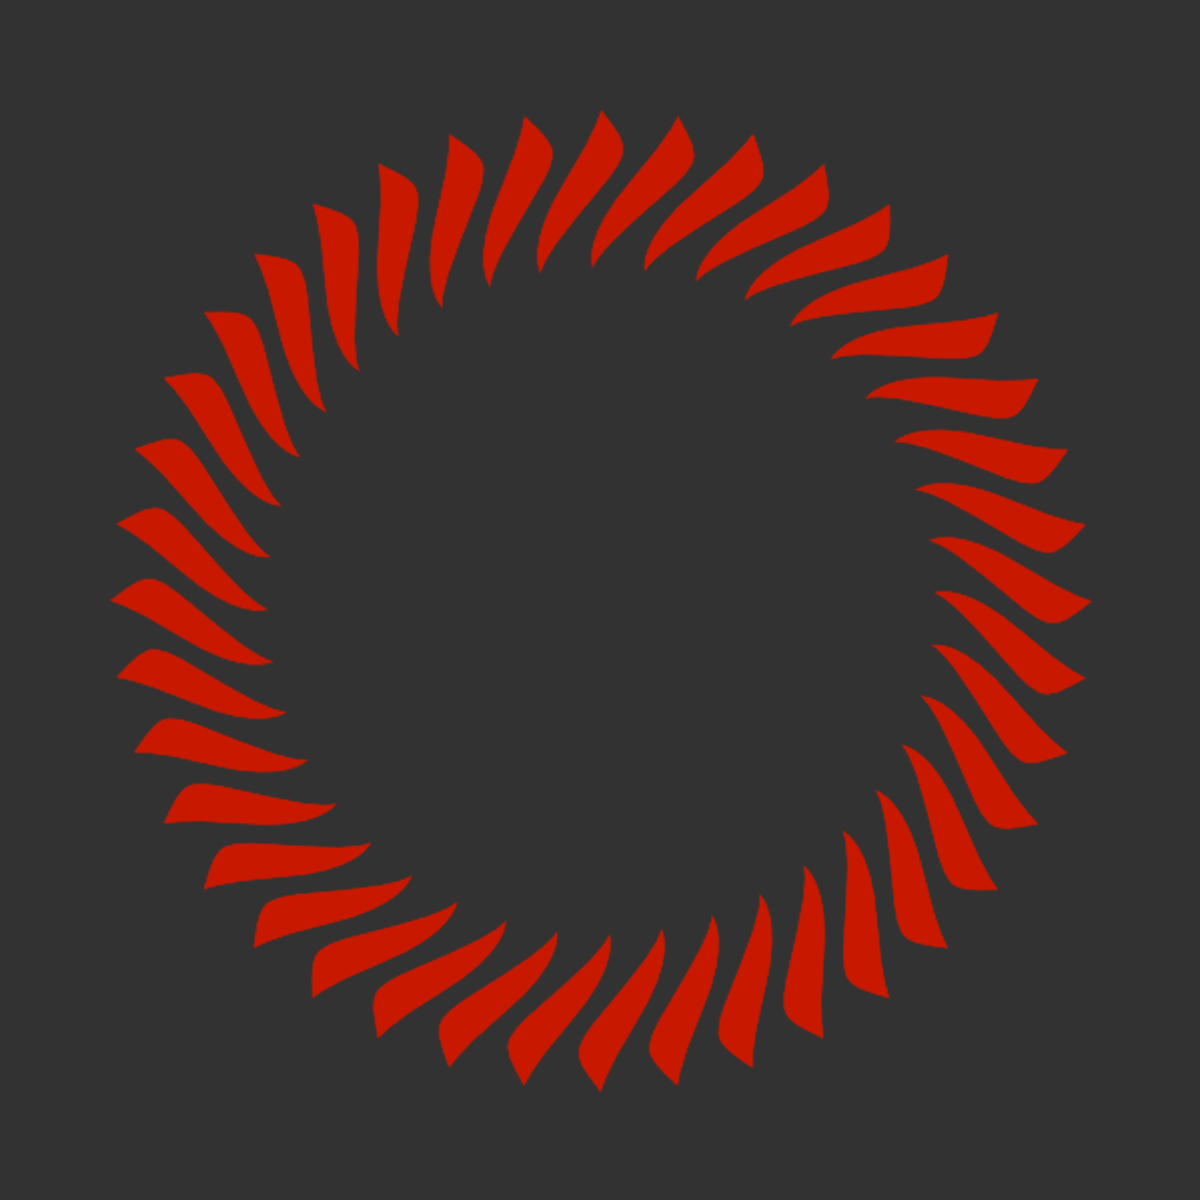 15.0200 Coalescence - ICONOGRAPHY (HOSP 1001).png